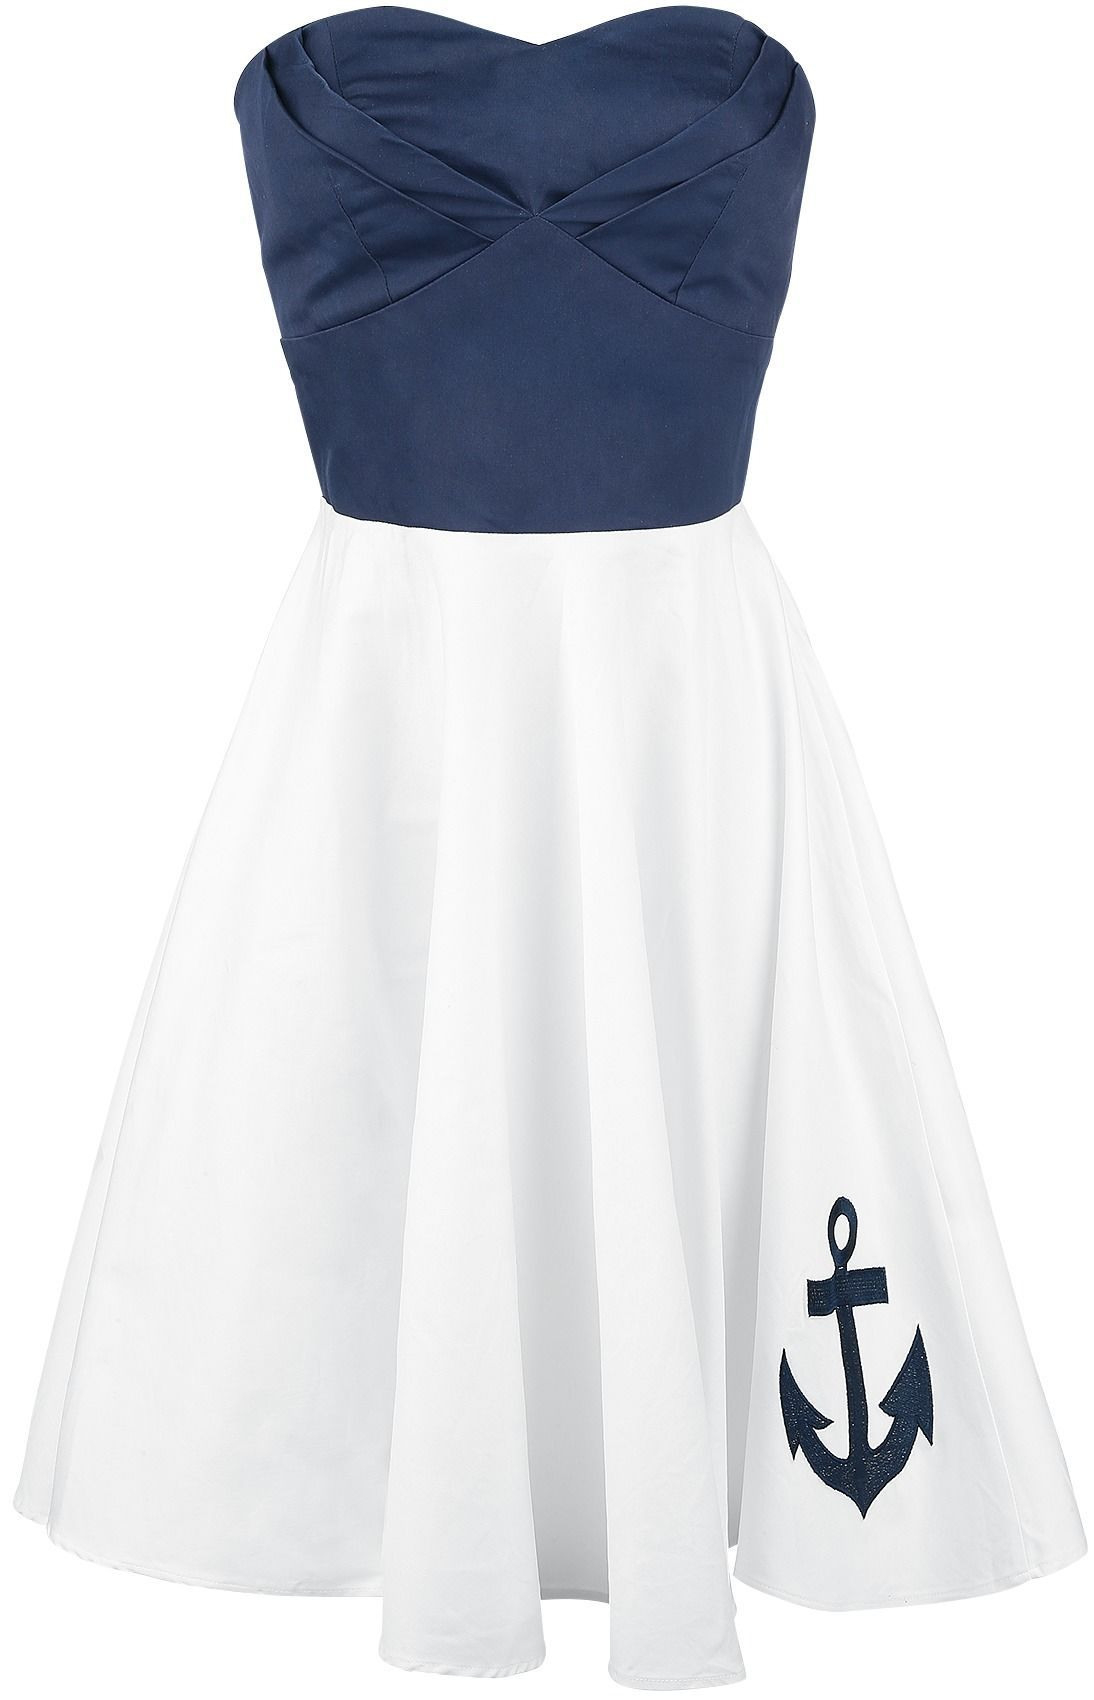 Anchor Dress  Dolly And Dotty Mittellanges Kleid  Emp